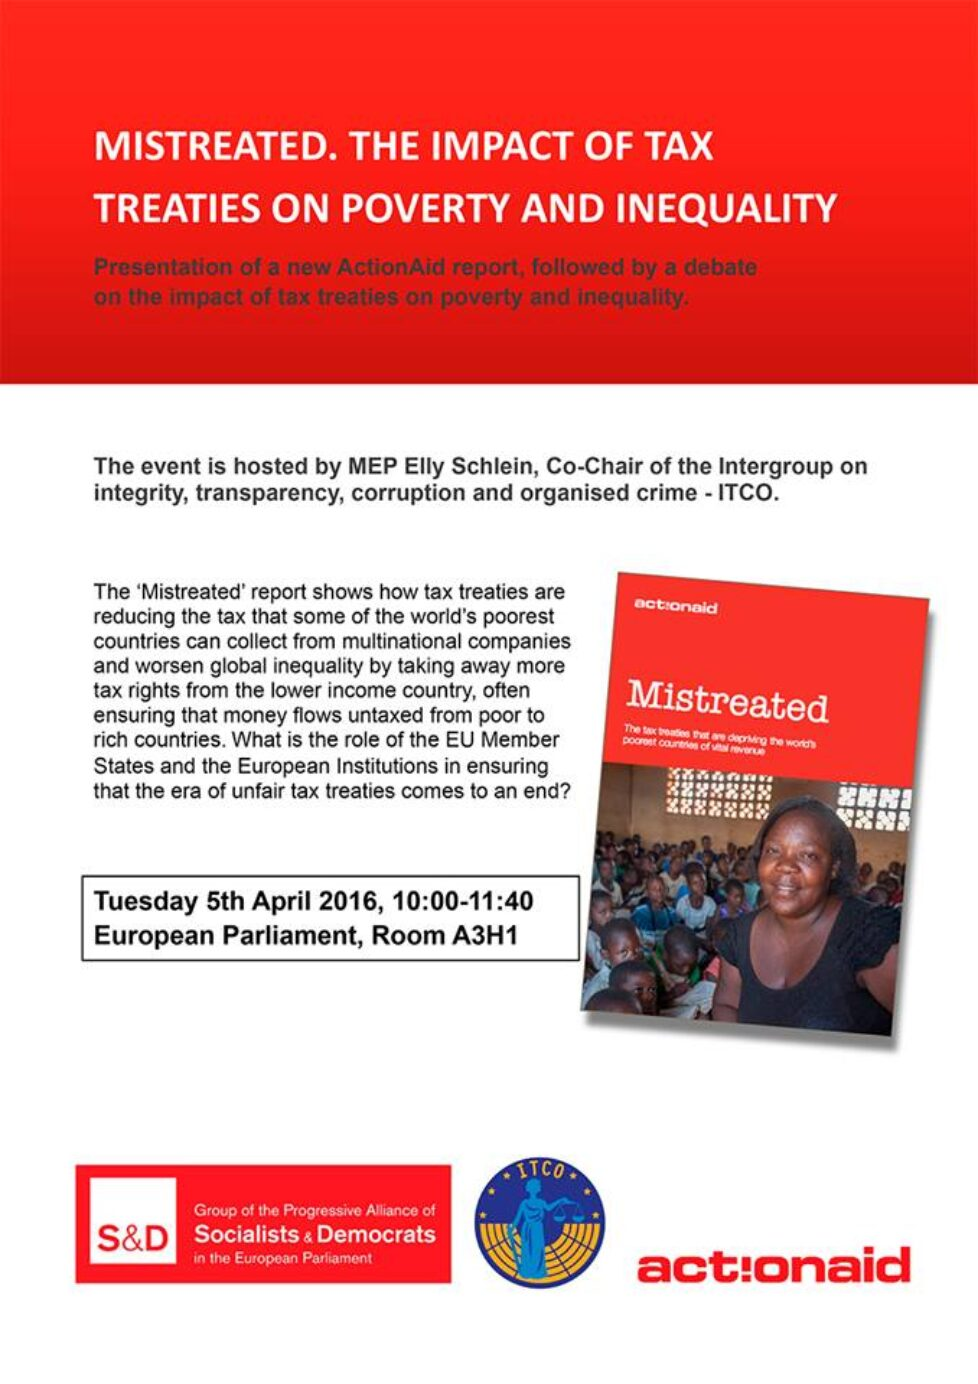 The impact of tax treaties on poverty and inequality